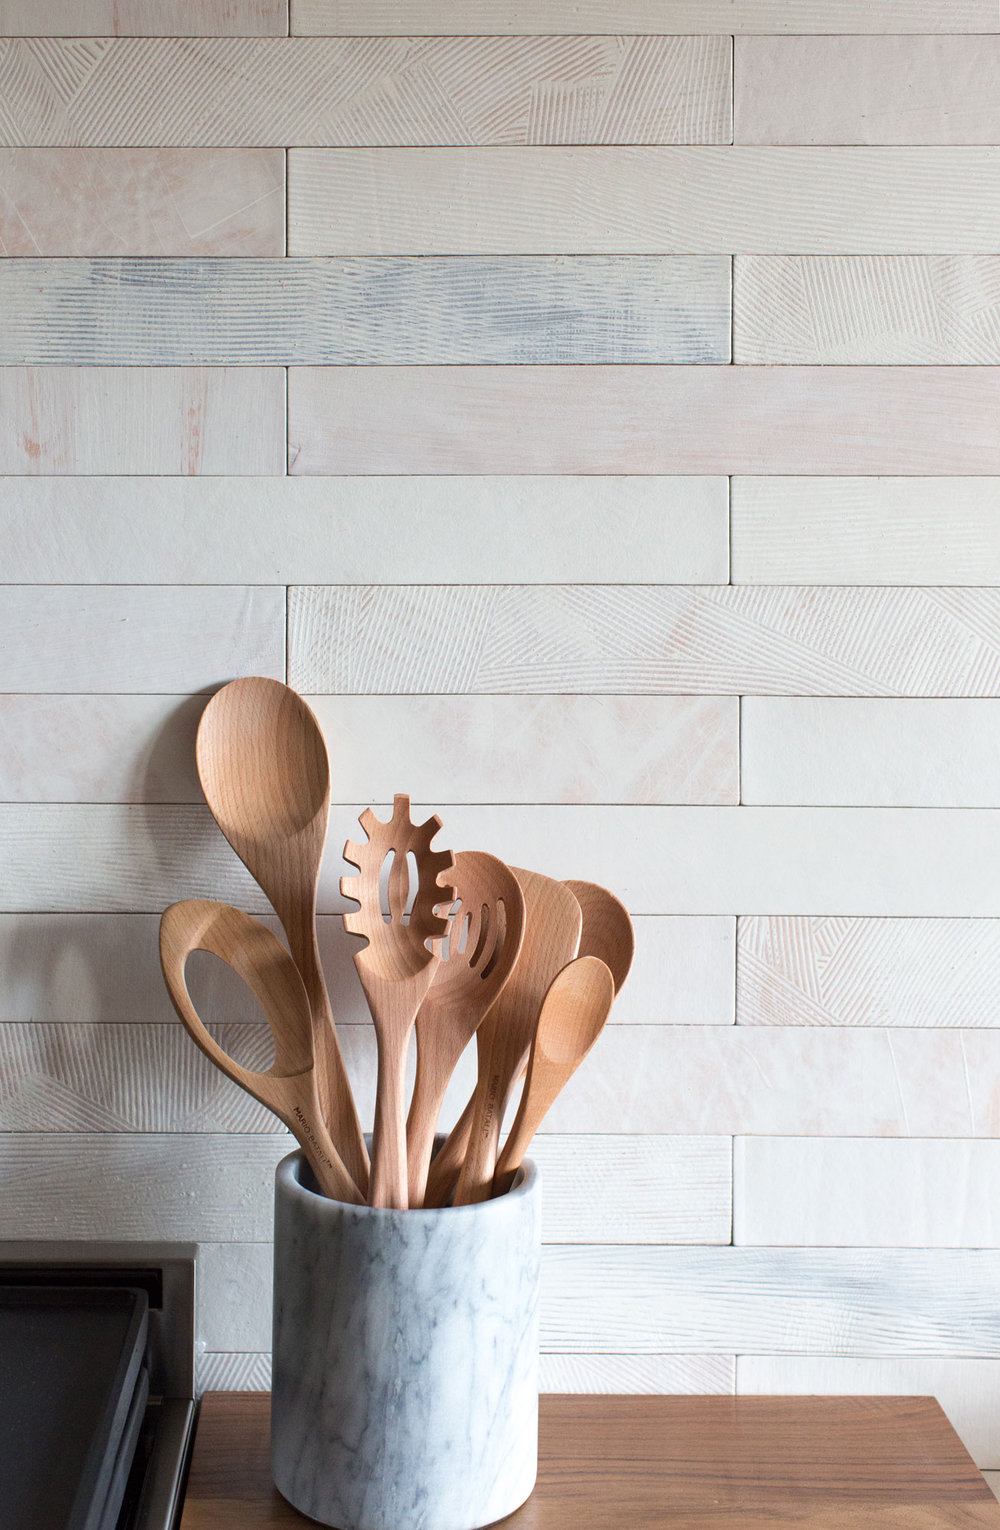 Item Wall Tiles | Pattern Salt Wash | Color White | Image from SDK Photo